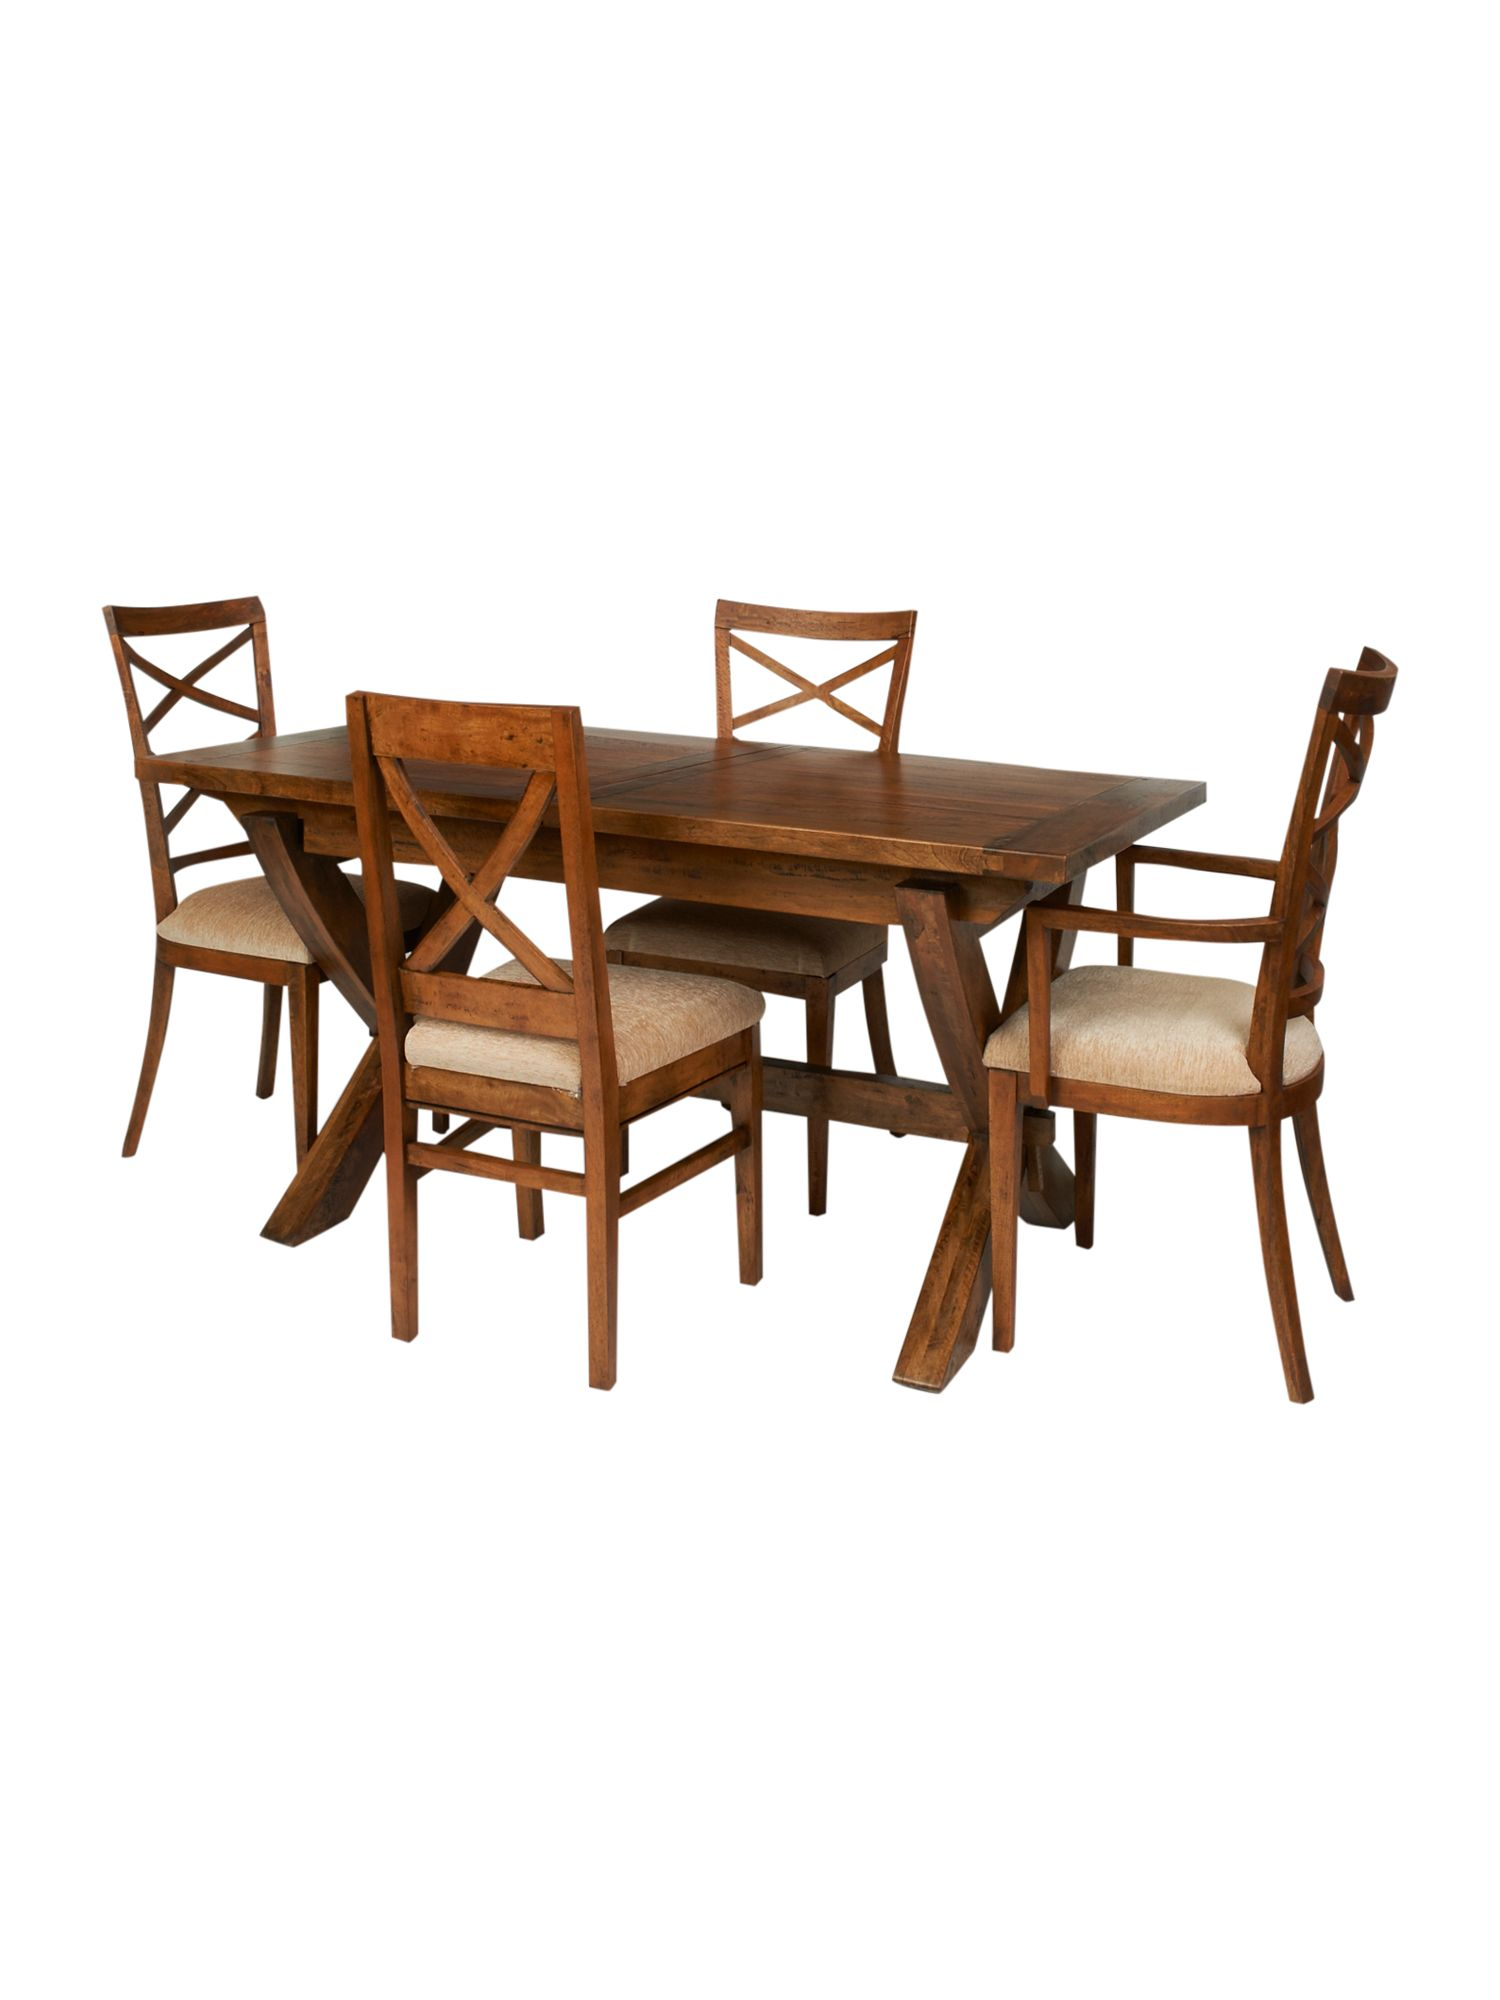 Marlborough dining range